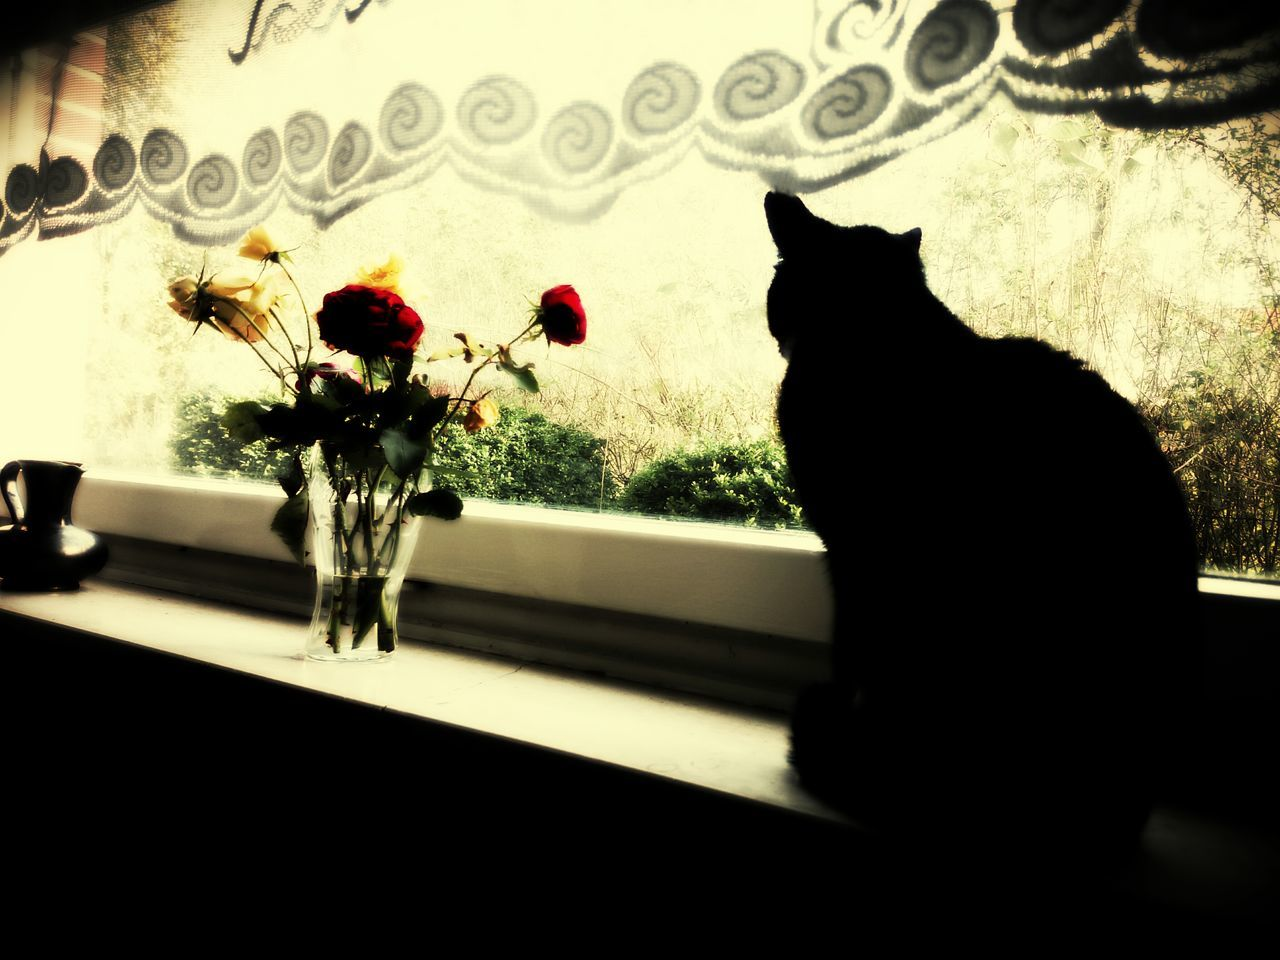 domestic cat, pets, domestic animals, cat, one animal, animal themes, feline, mammal, indoors, silhouette, no people, home interior, flower, sitting, nature, day, close-up